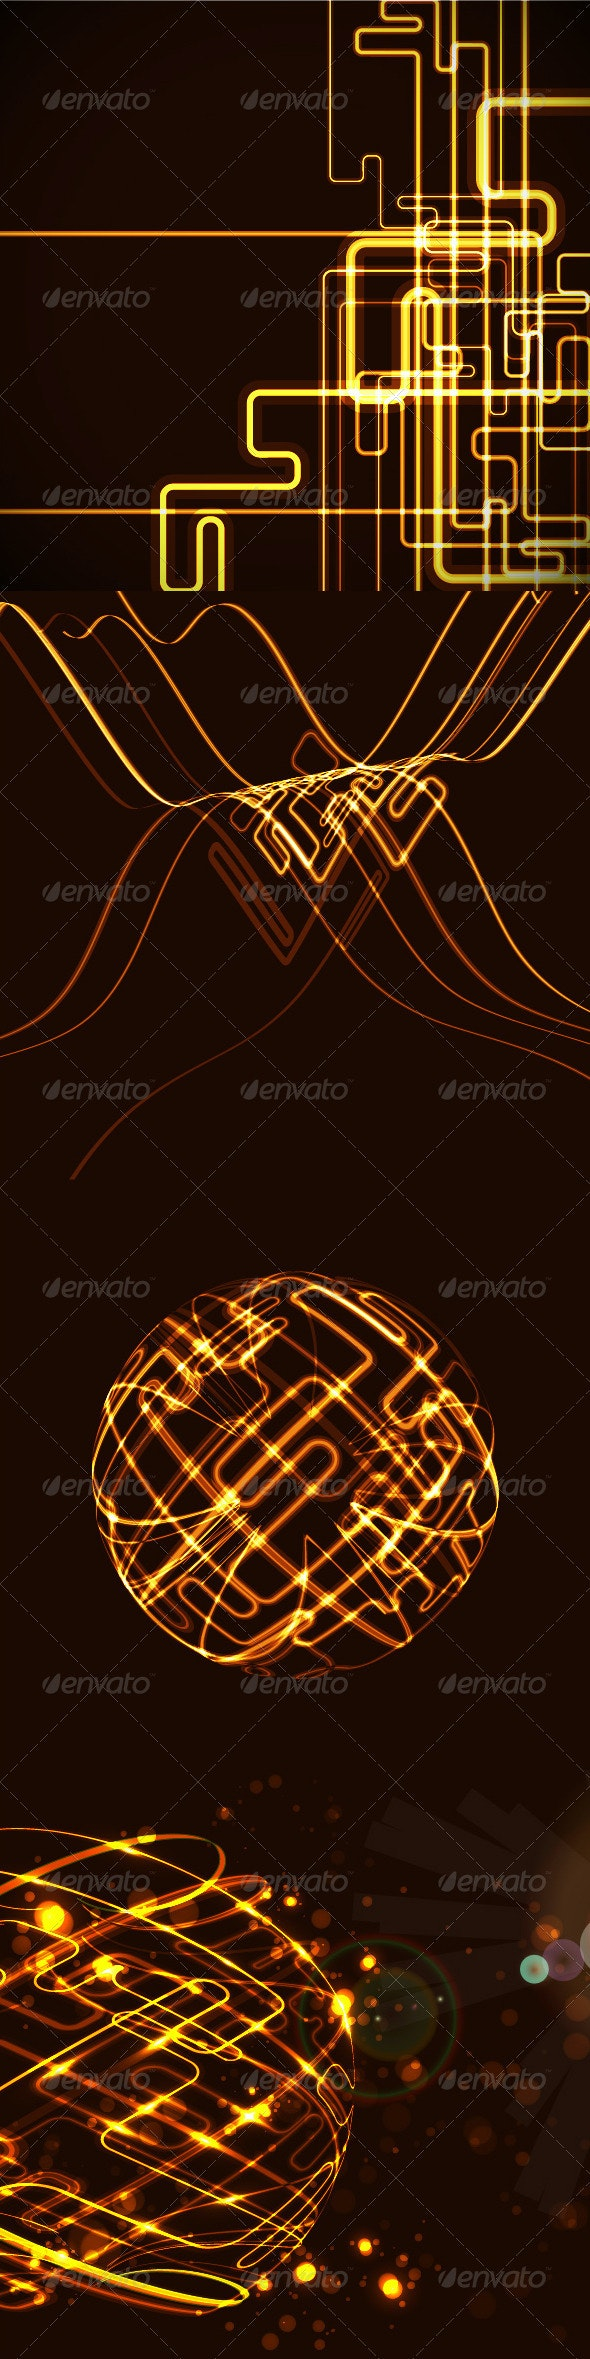 Abstract Background Vector - Backgrounds Business